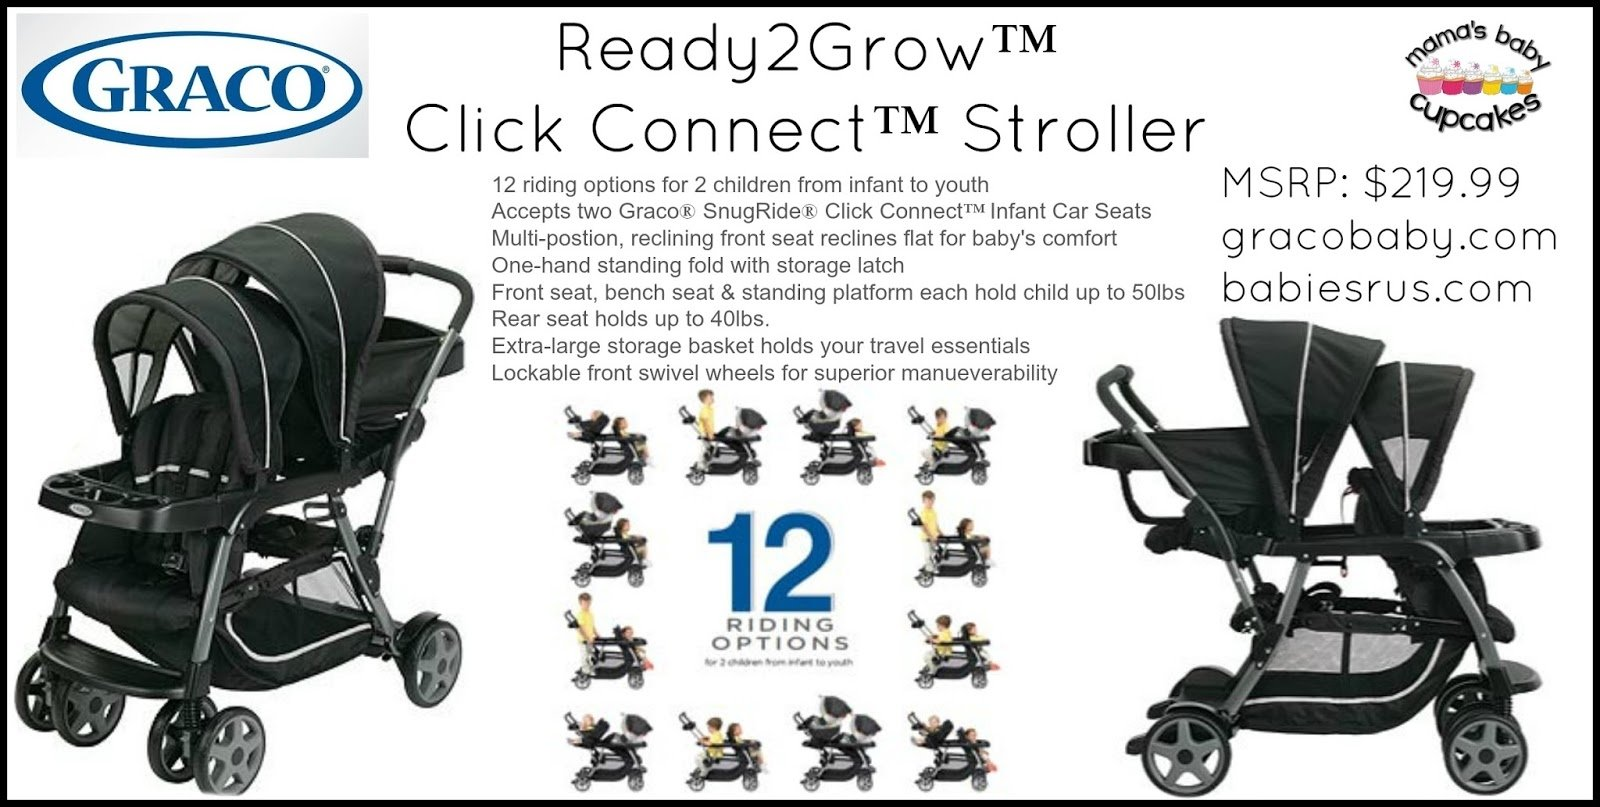 Double Stroller Research! — The Bump